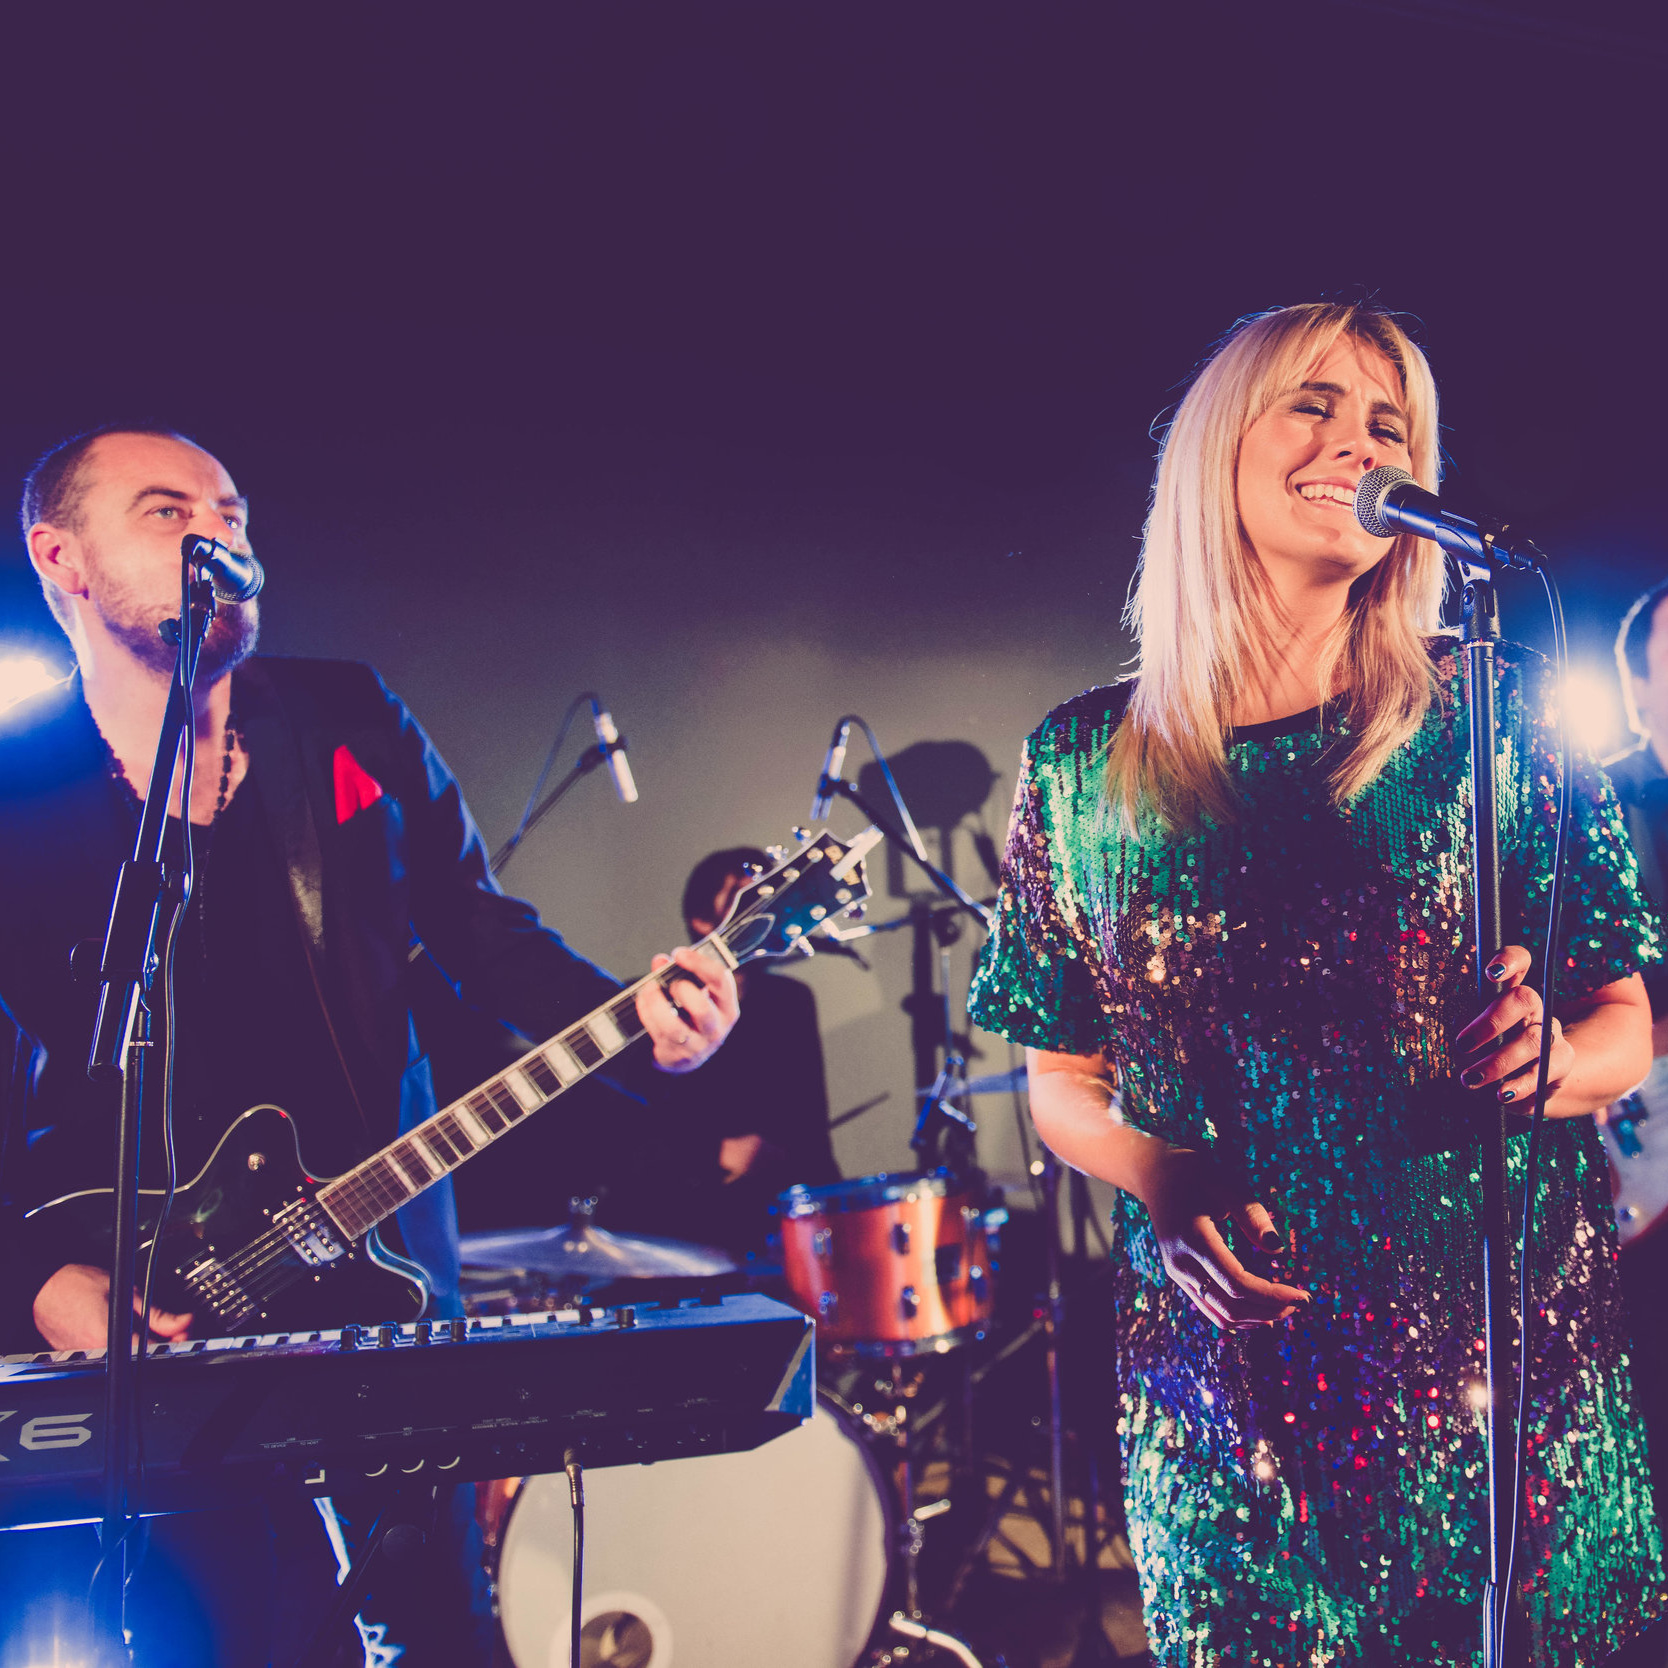 THE 1965 - If you're looking for an extra special act for your wedding or corporate event, then look no further. With decades of performance experience between them, The 1965 are the go-to premium act for any event. Expect classics from Aretha Franklin, Beyonce and Adele.